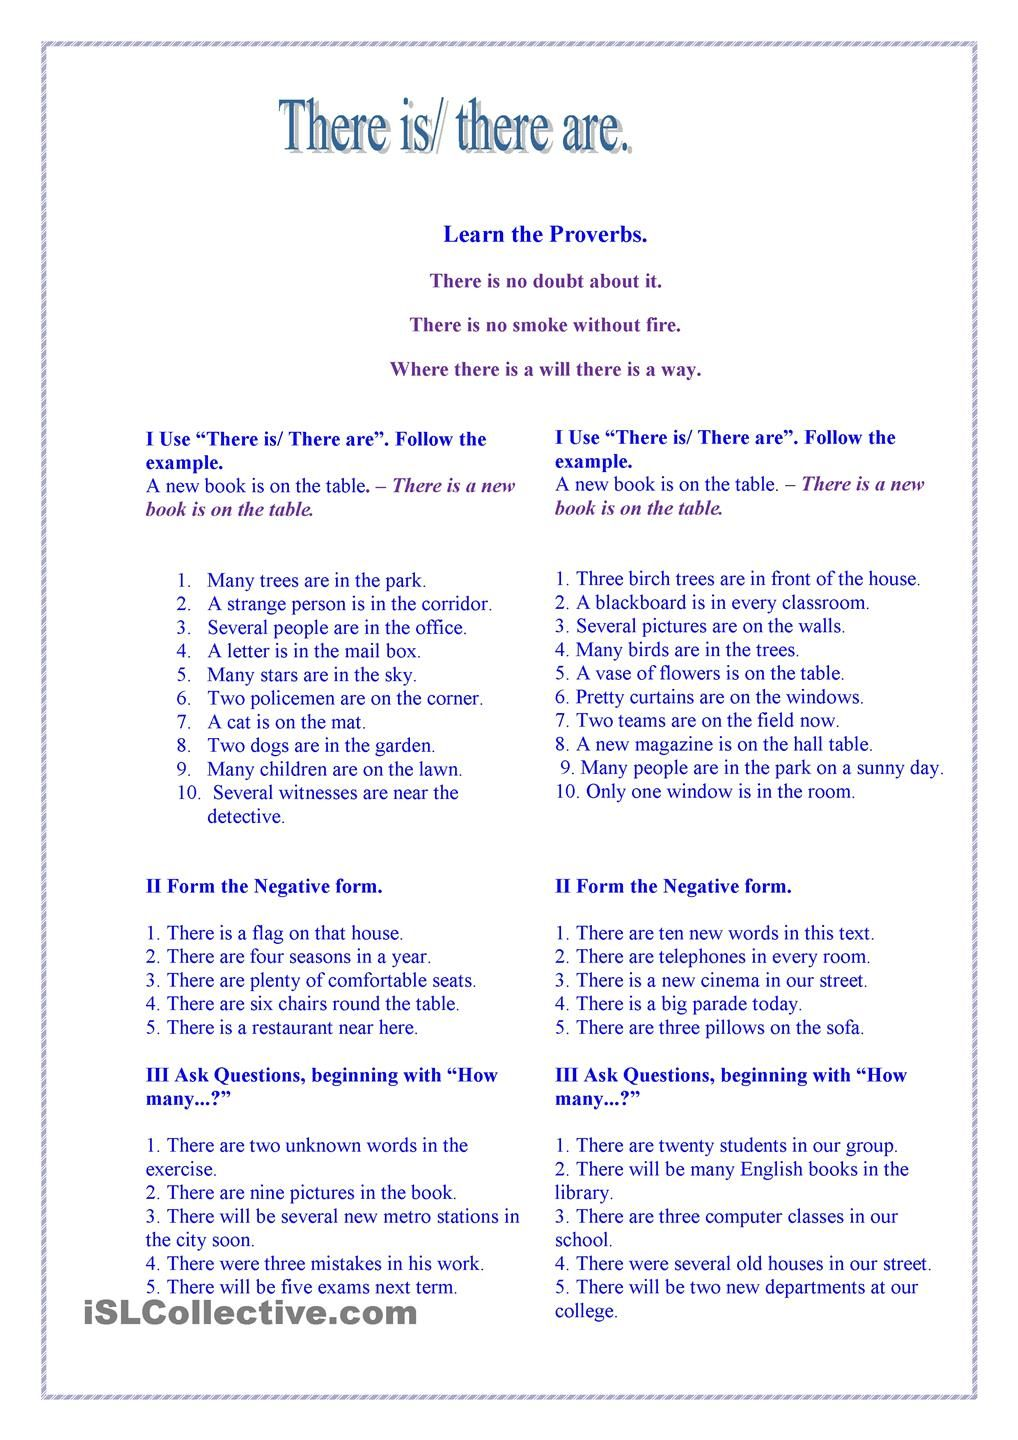 There is/ there are. Grammar worksheets, Learn english